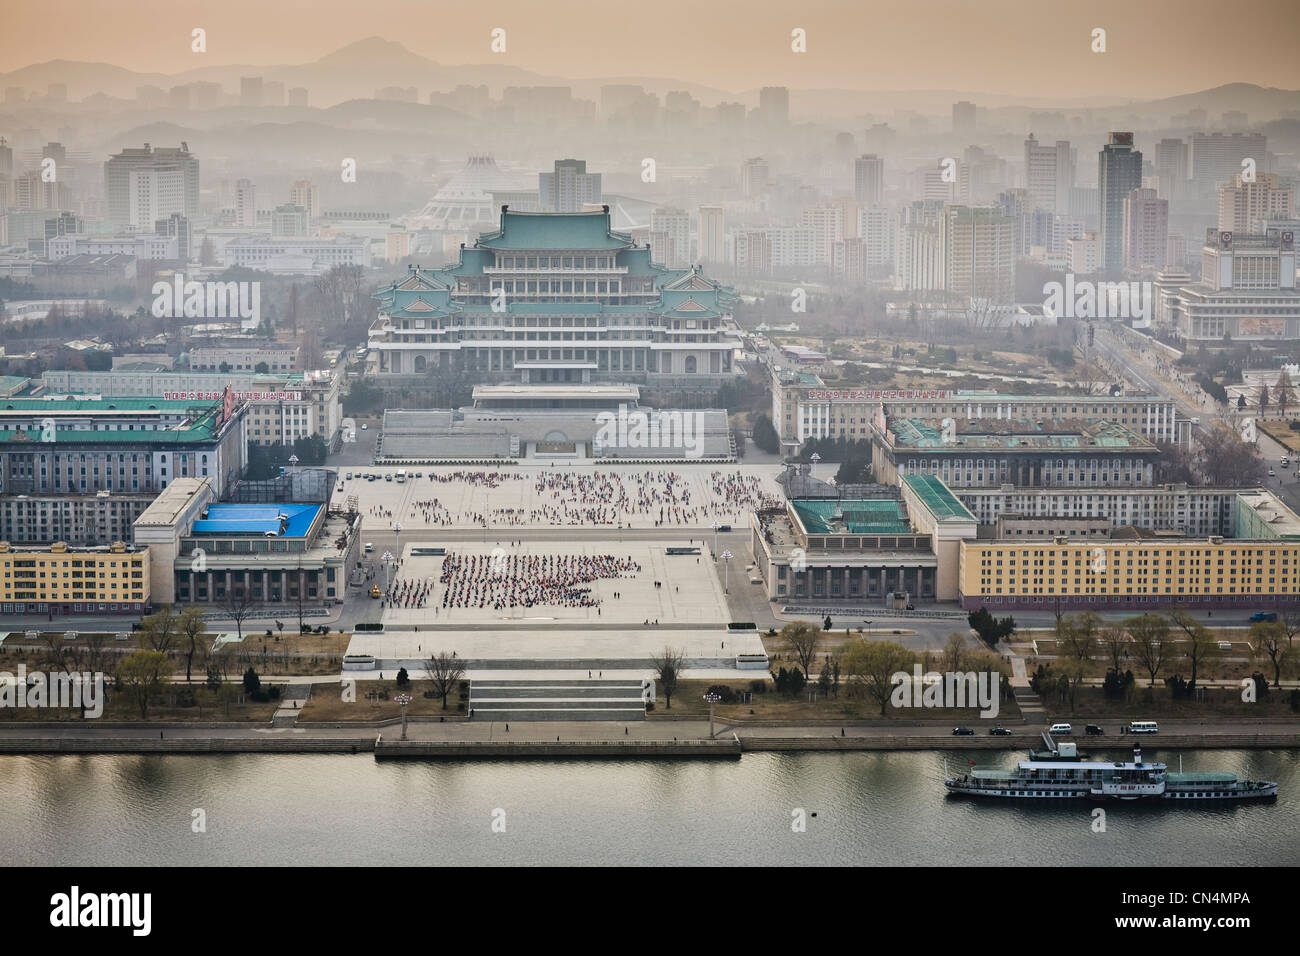 North Korea, Pyongyang, Juche tower, elevated view of Kim Il-Sung square across the Taedong river - Stock Image